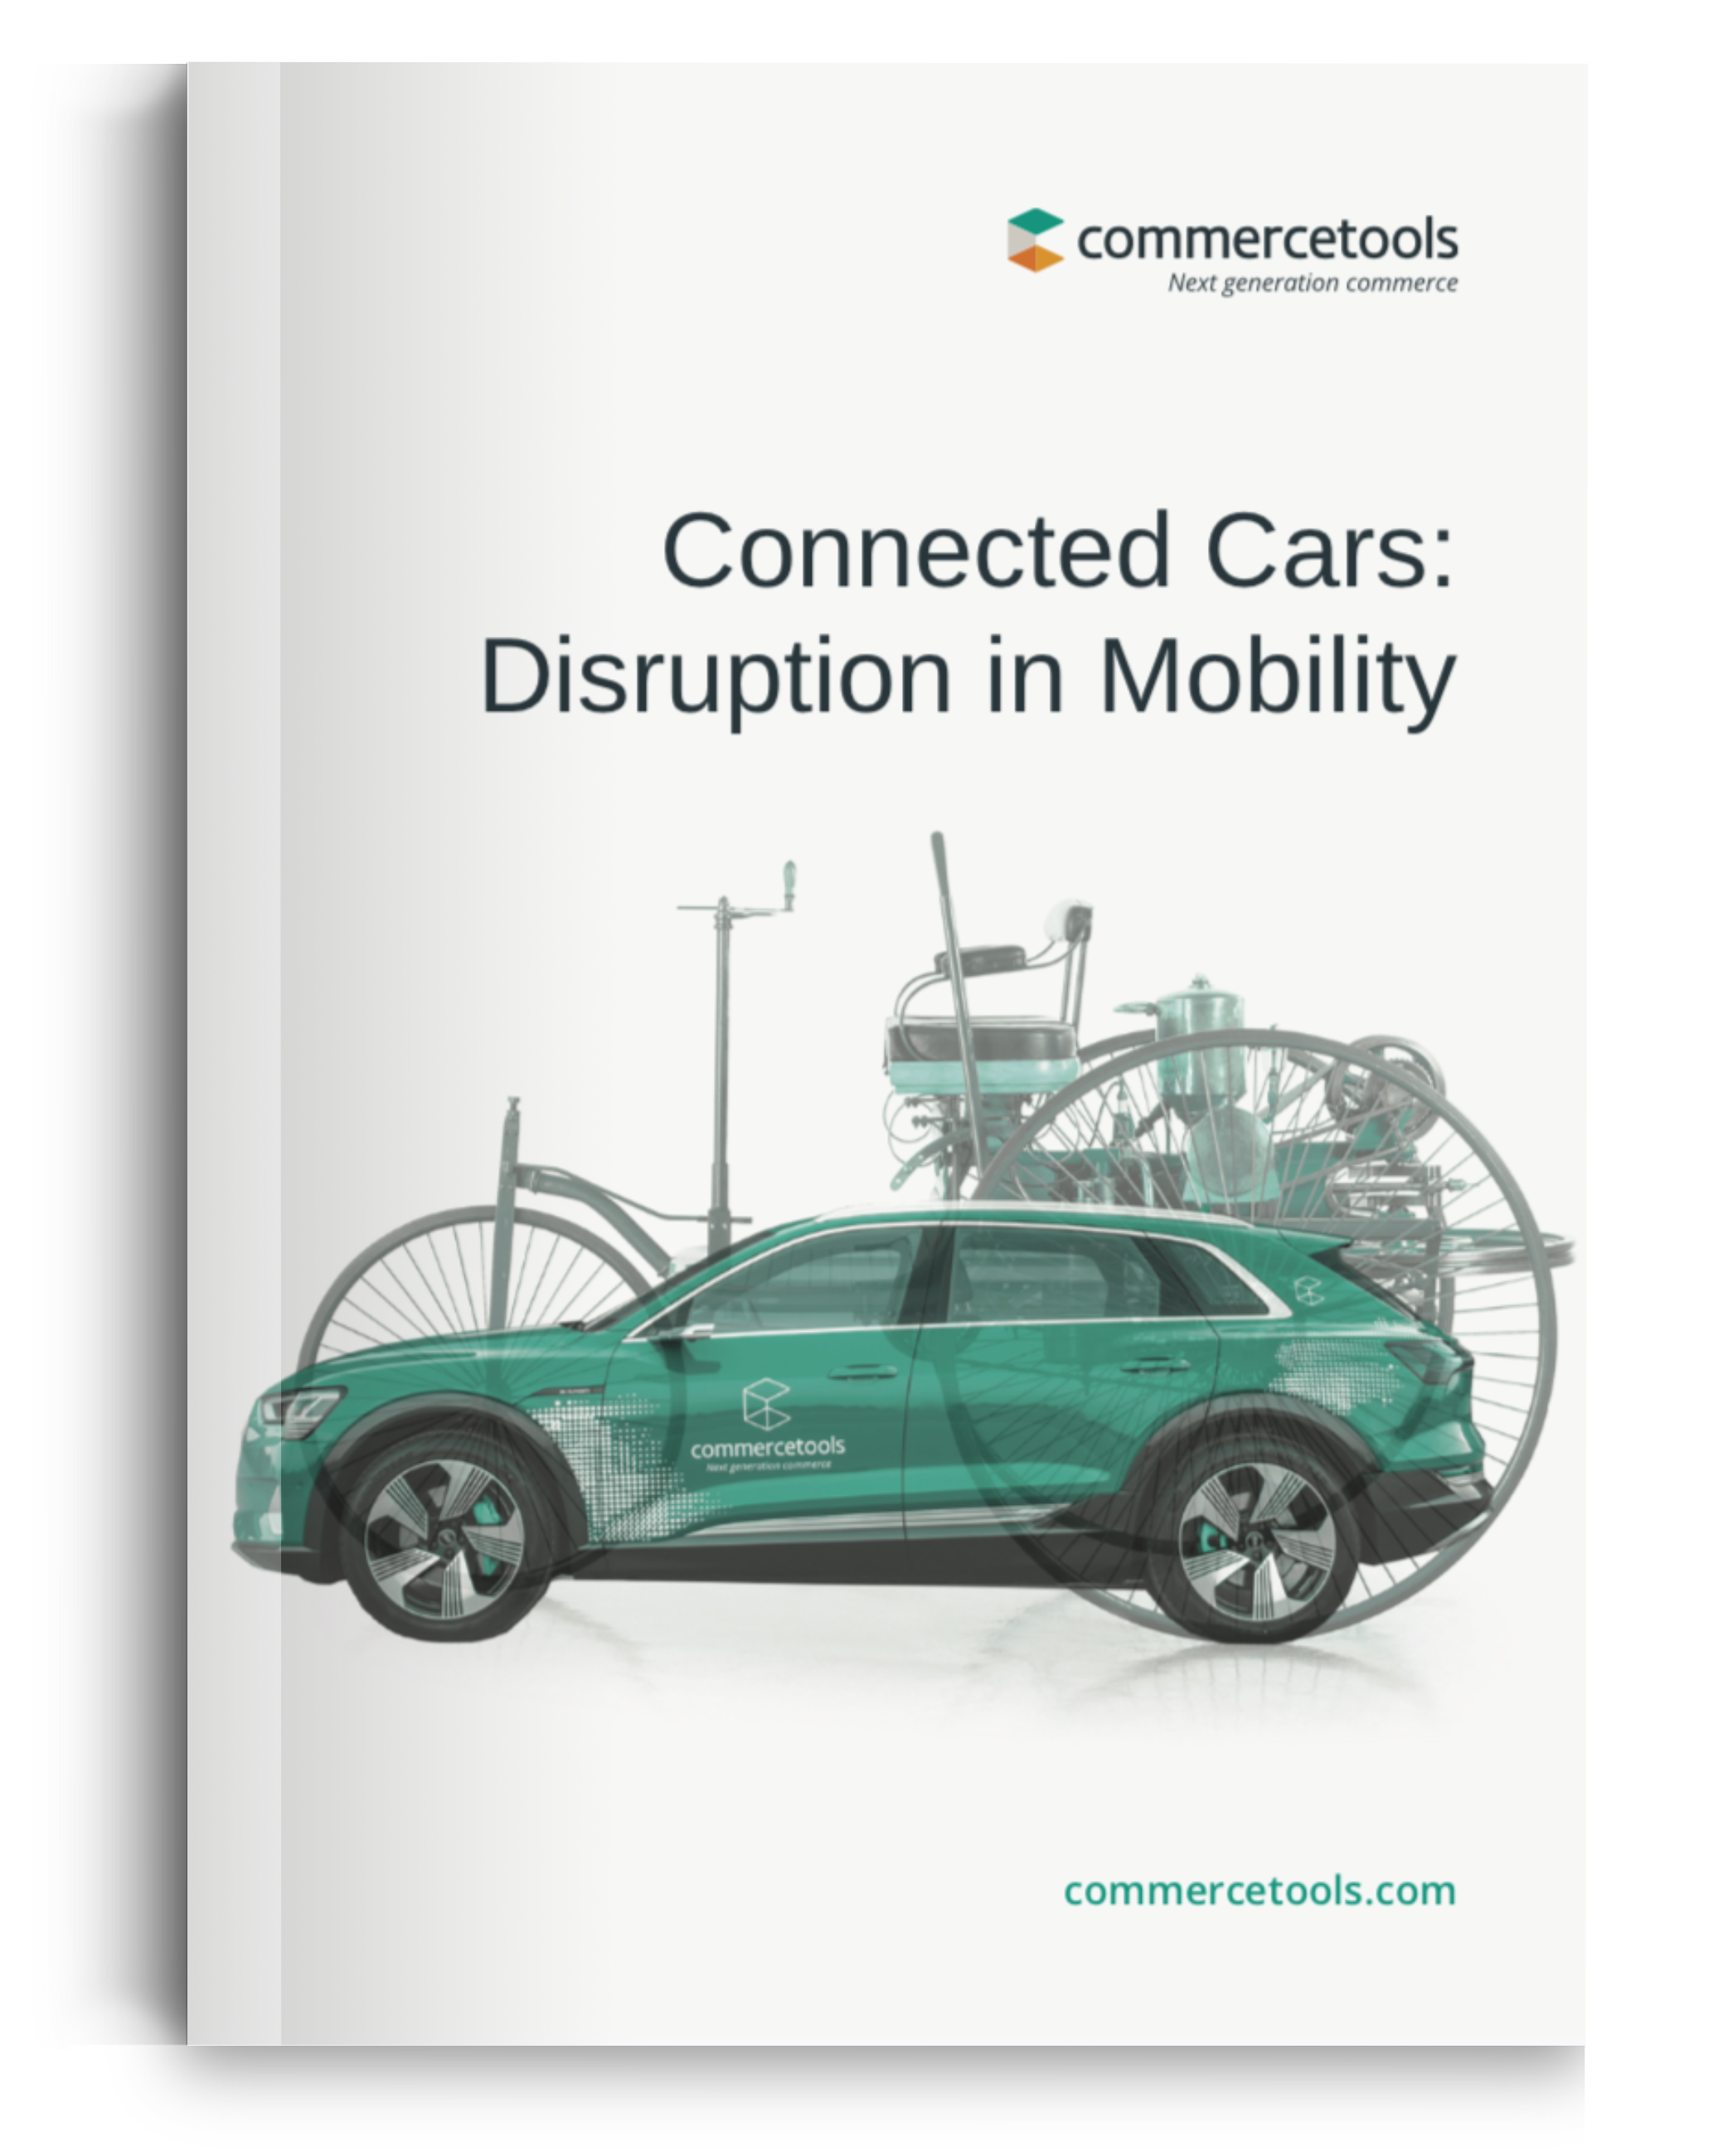 commercetools_Whitepaper_Connected_Cars_EN_Cover